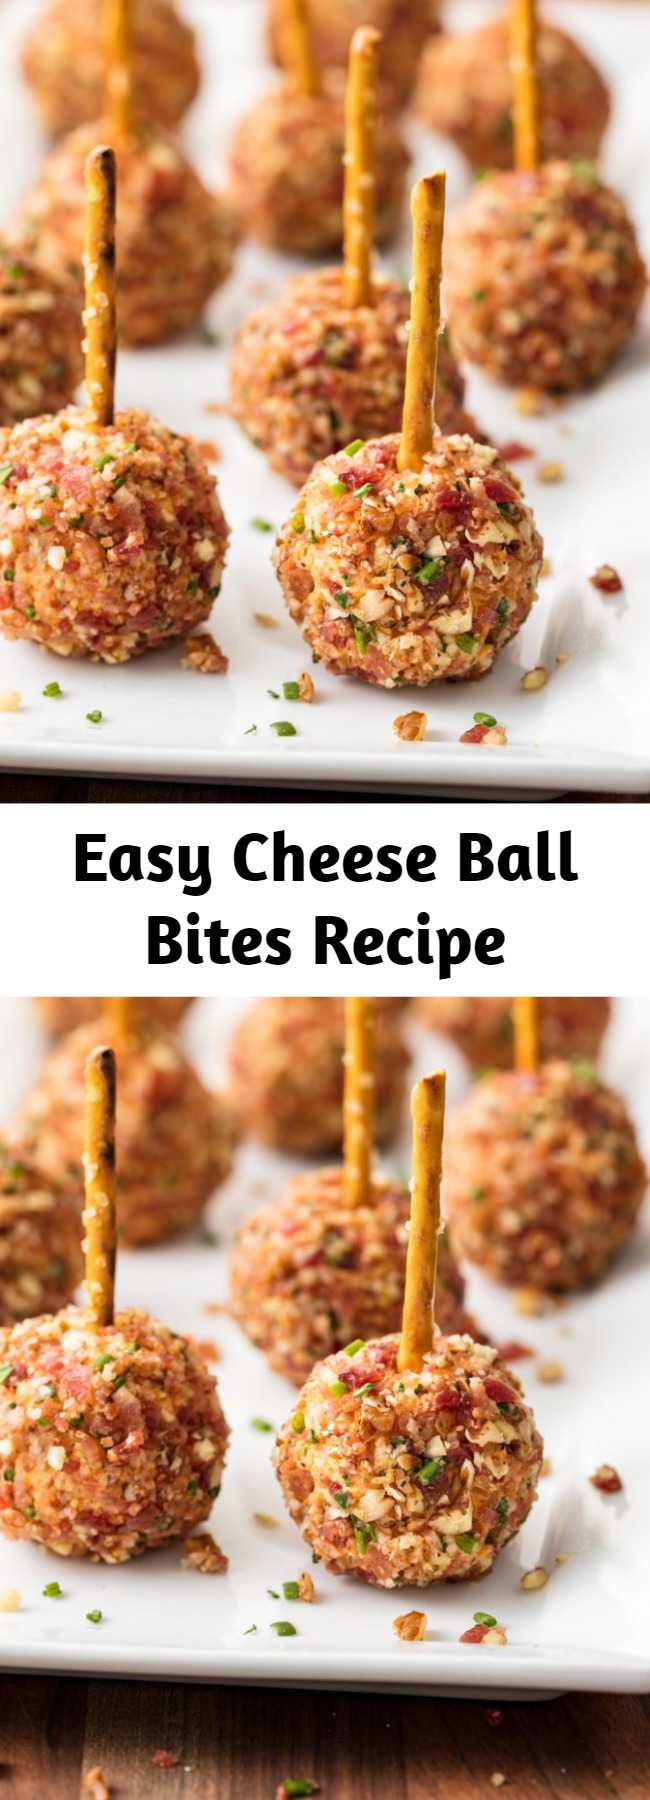 Easy Cheese Ball Bites Recipe - These Cheese Ball Bites are the easy, no-stress, Thanksgiving, Christmas, holiday appetizer that everyone will be talking about for YEARS. #thanksgiving #christmas #holidays #superbowl #appetizers #nobake #cheese #cheeseball #bites #bacon #creamcheese #pretzels #mini #easy #recipe #fingerfoods #snacks #mini #keto